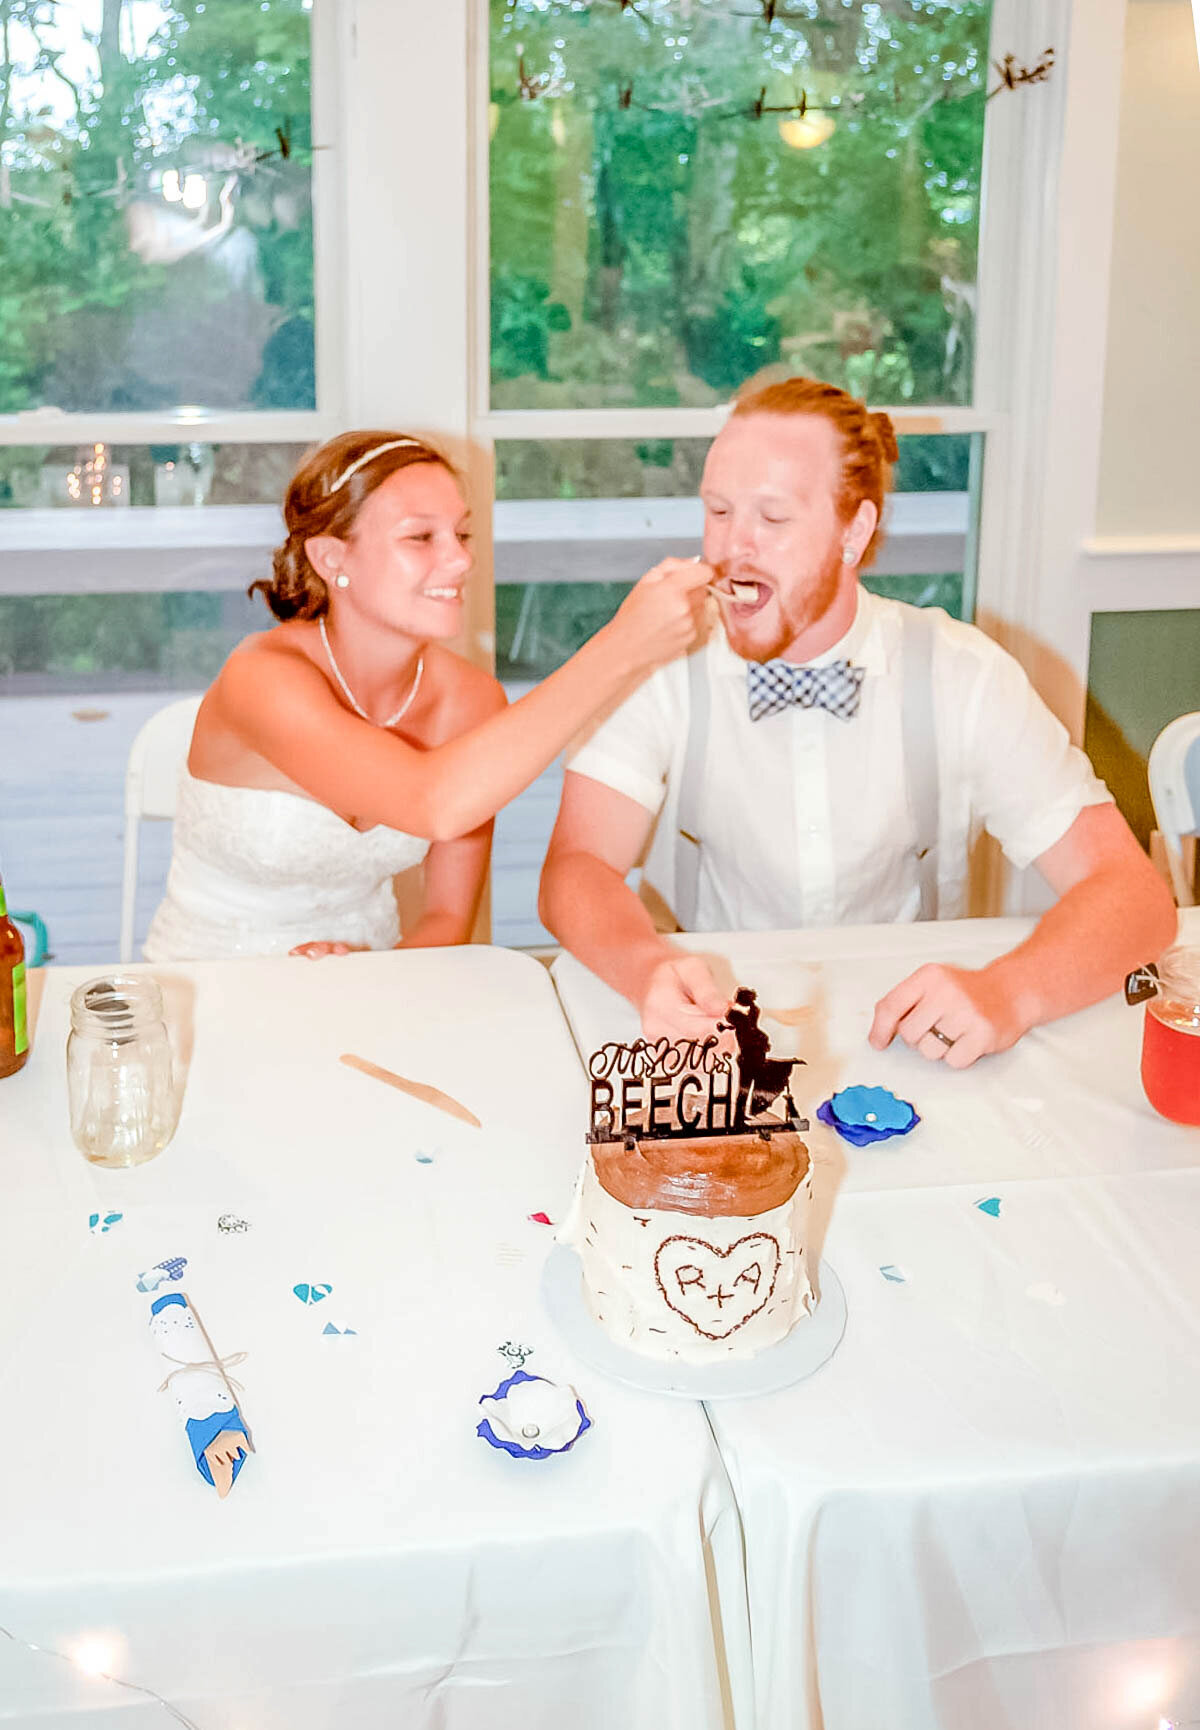 Bald Head Island Wedding Photography - Anna and Ray - Reception Cake Share - Wilmington NC Photographer Team